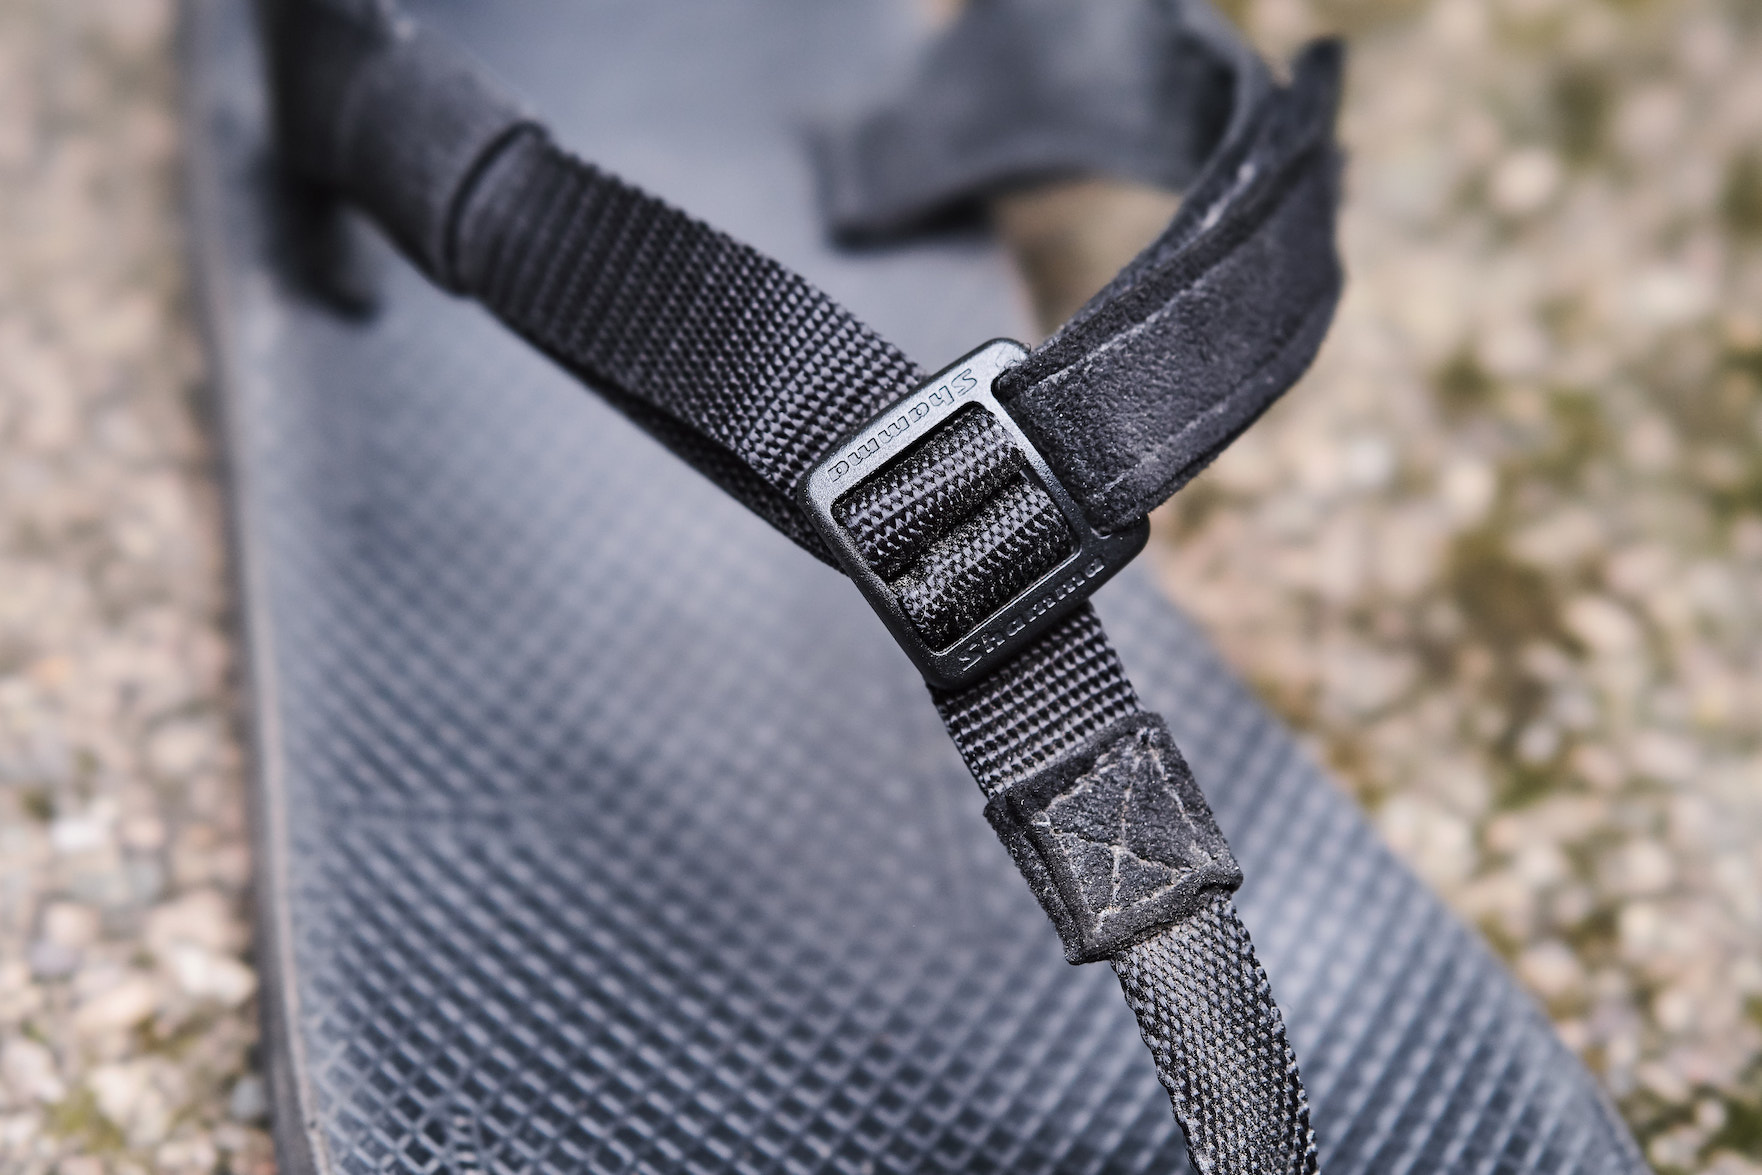 The latest buckle design is more streamlined and adjustable